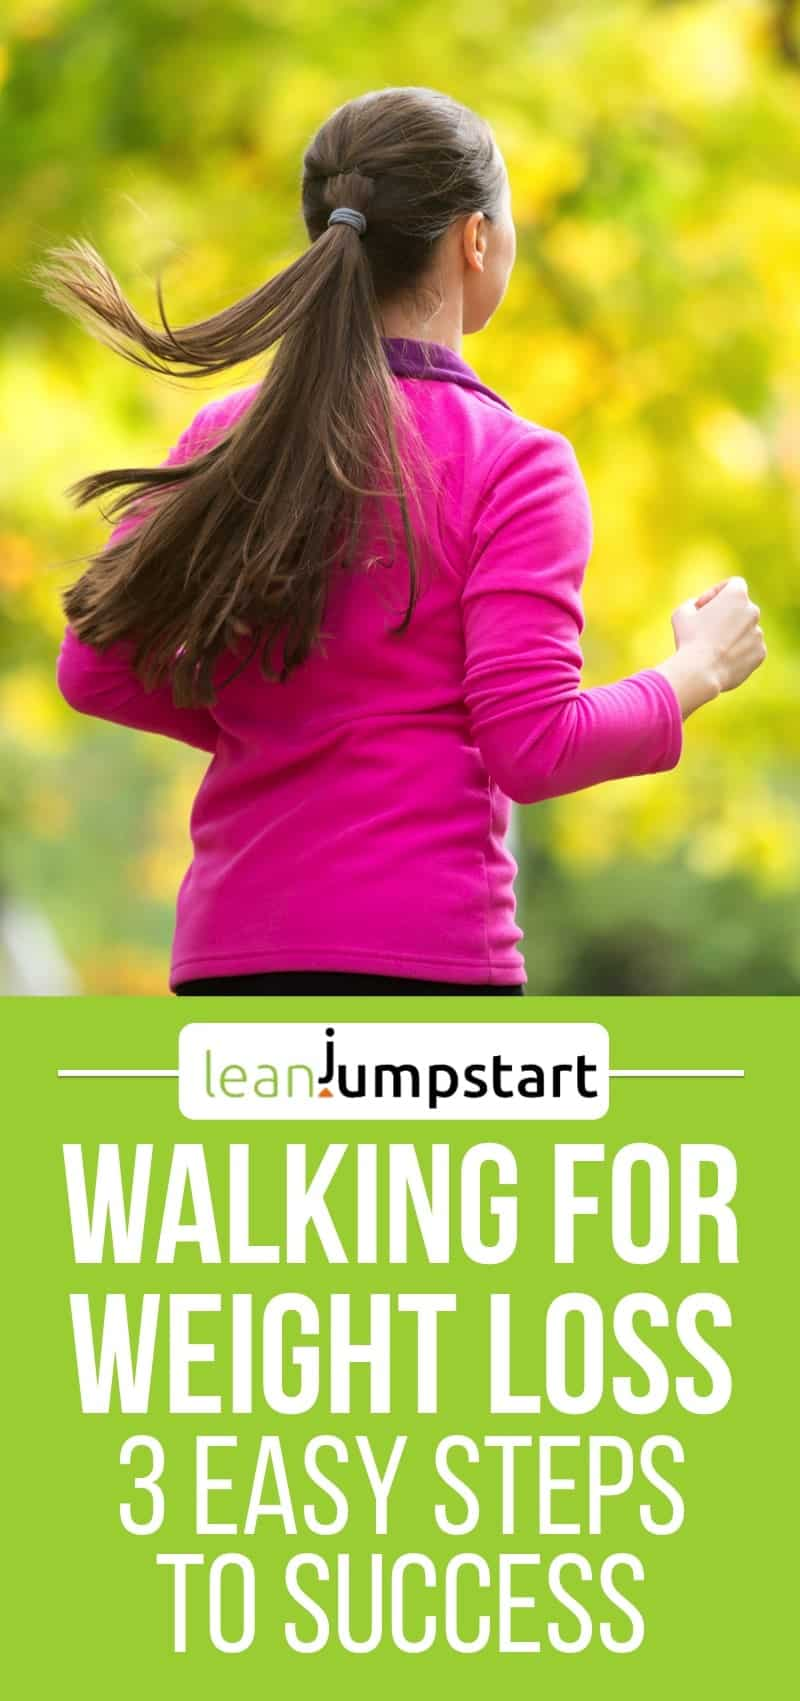 walking for weight loss: 3 simple steps for success